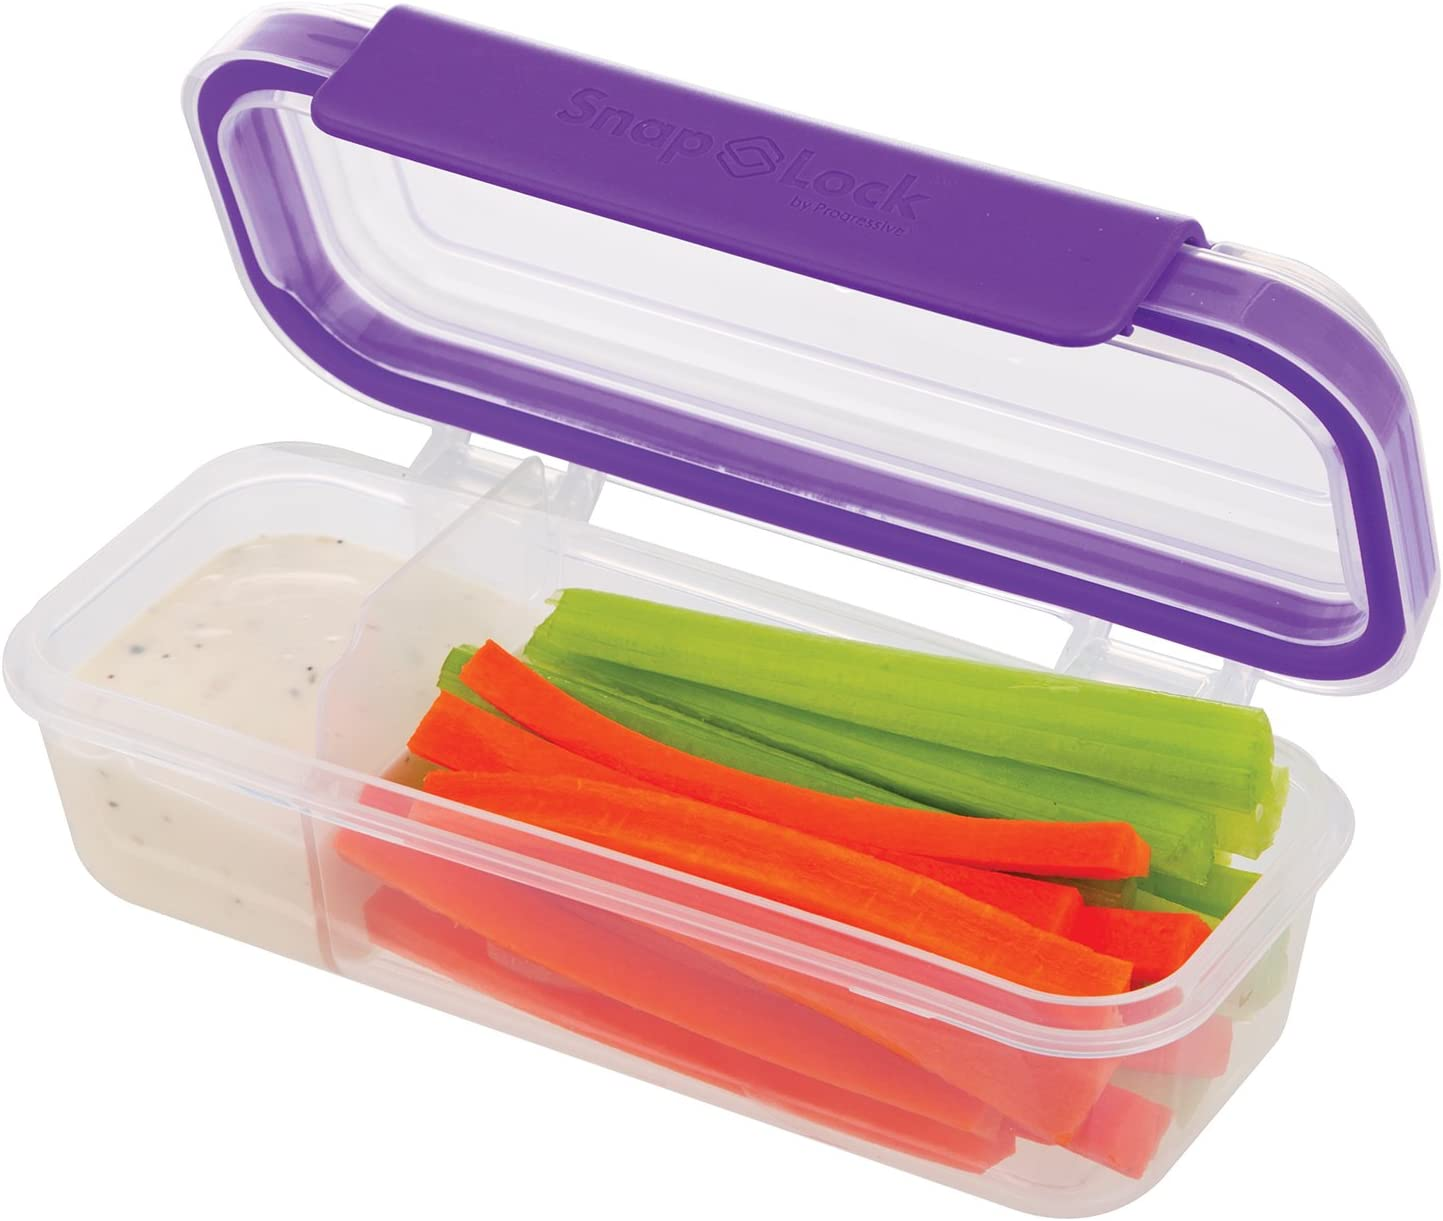 SnapLock by Progressive Snack Box Container - Purple, SNL-1020PEasy-To-Open, Leak-Proof Silicone Seal, Snap-Off Lid, Stackable, BPA FREE